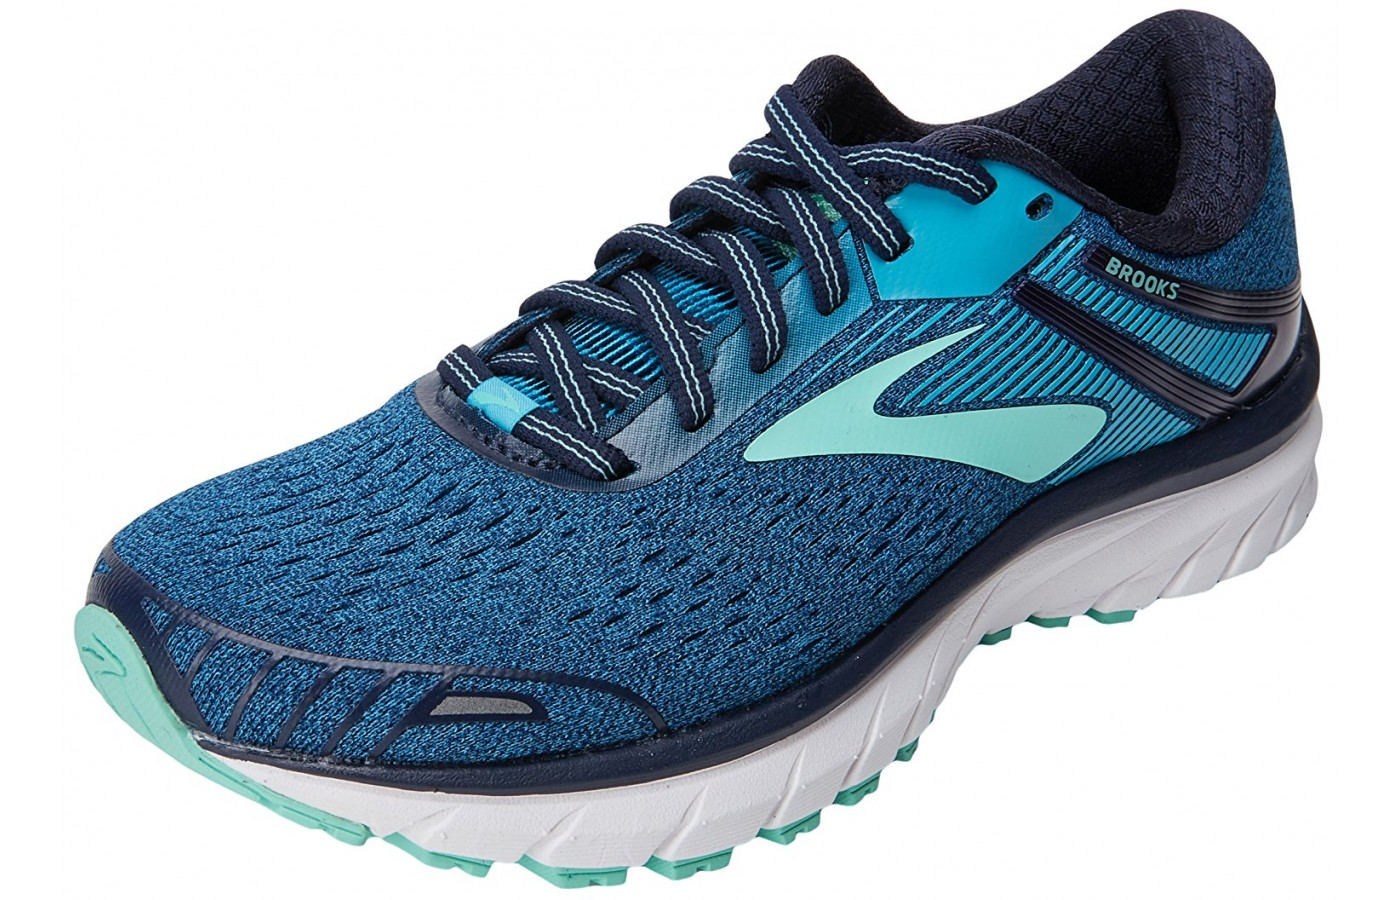 The Brooks Adrenaline GTS 18 shown from the front/side view